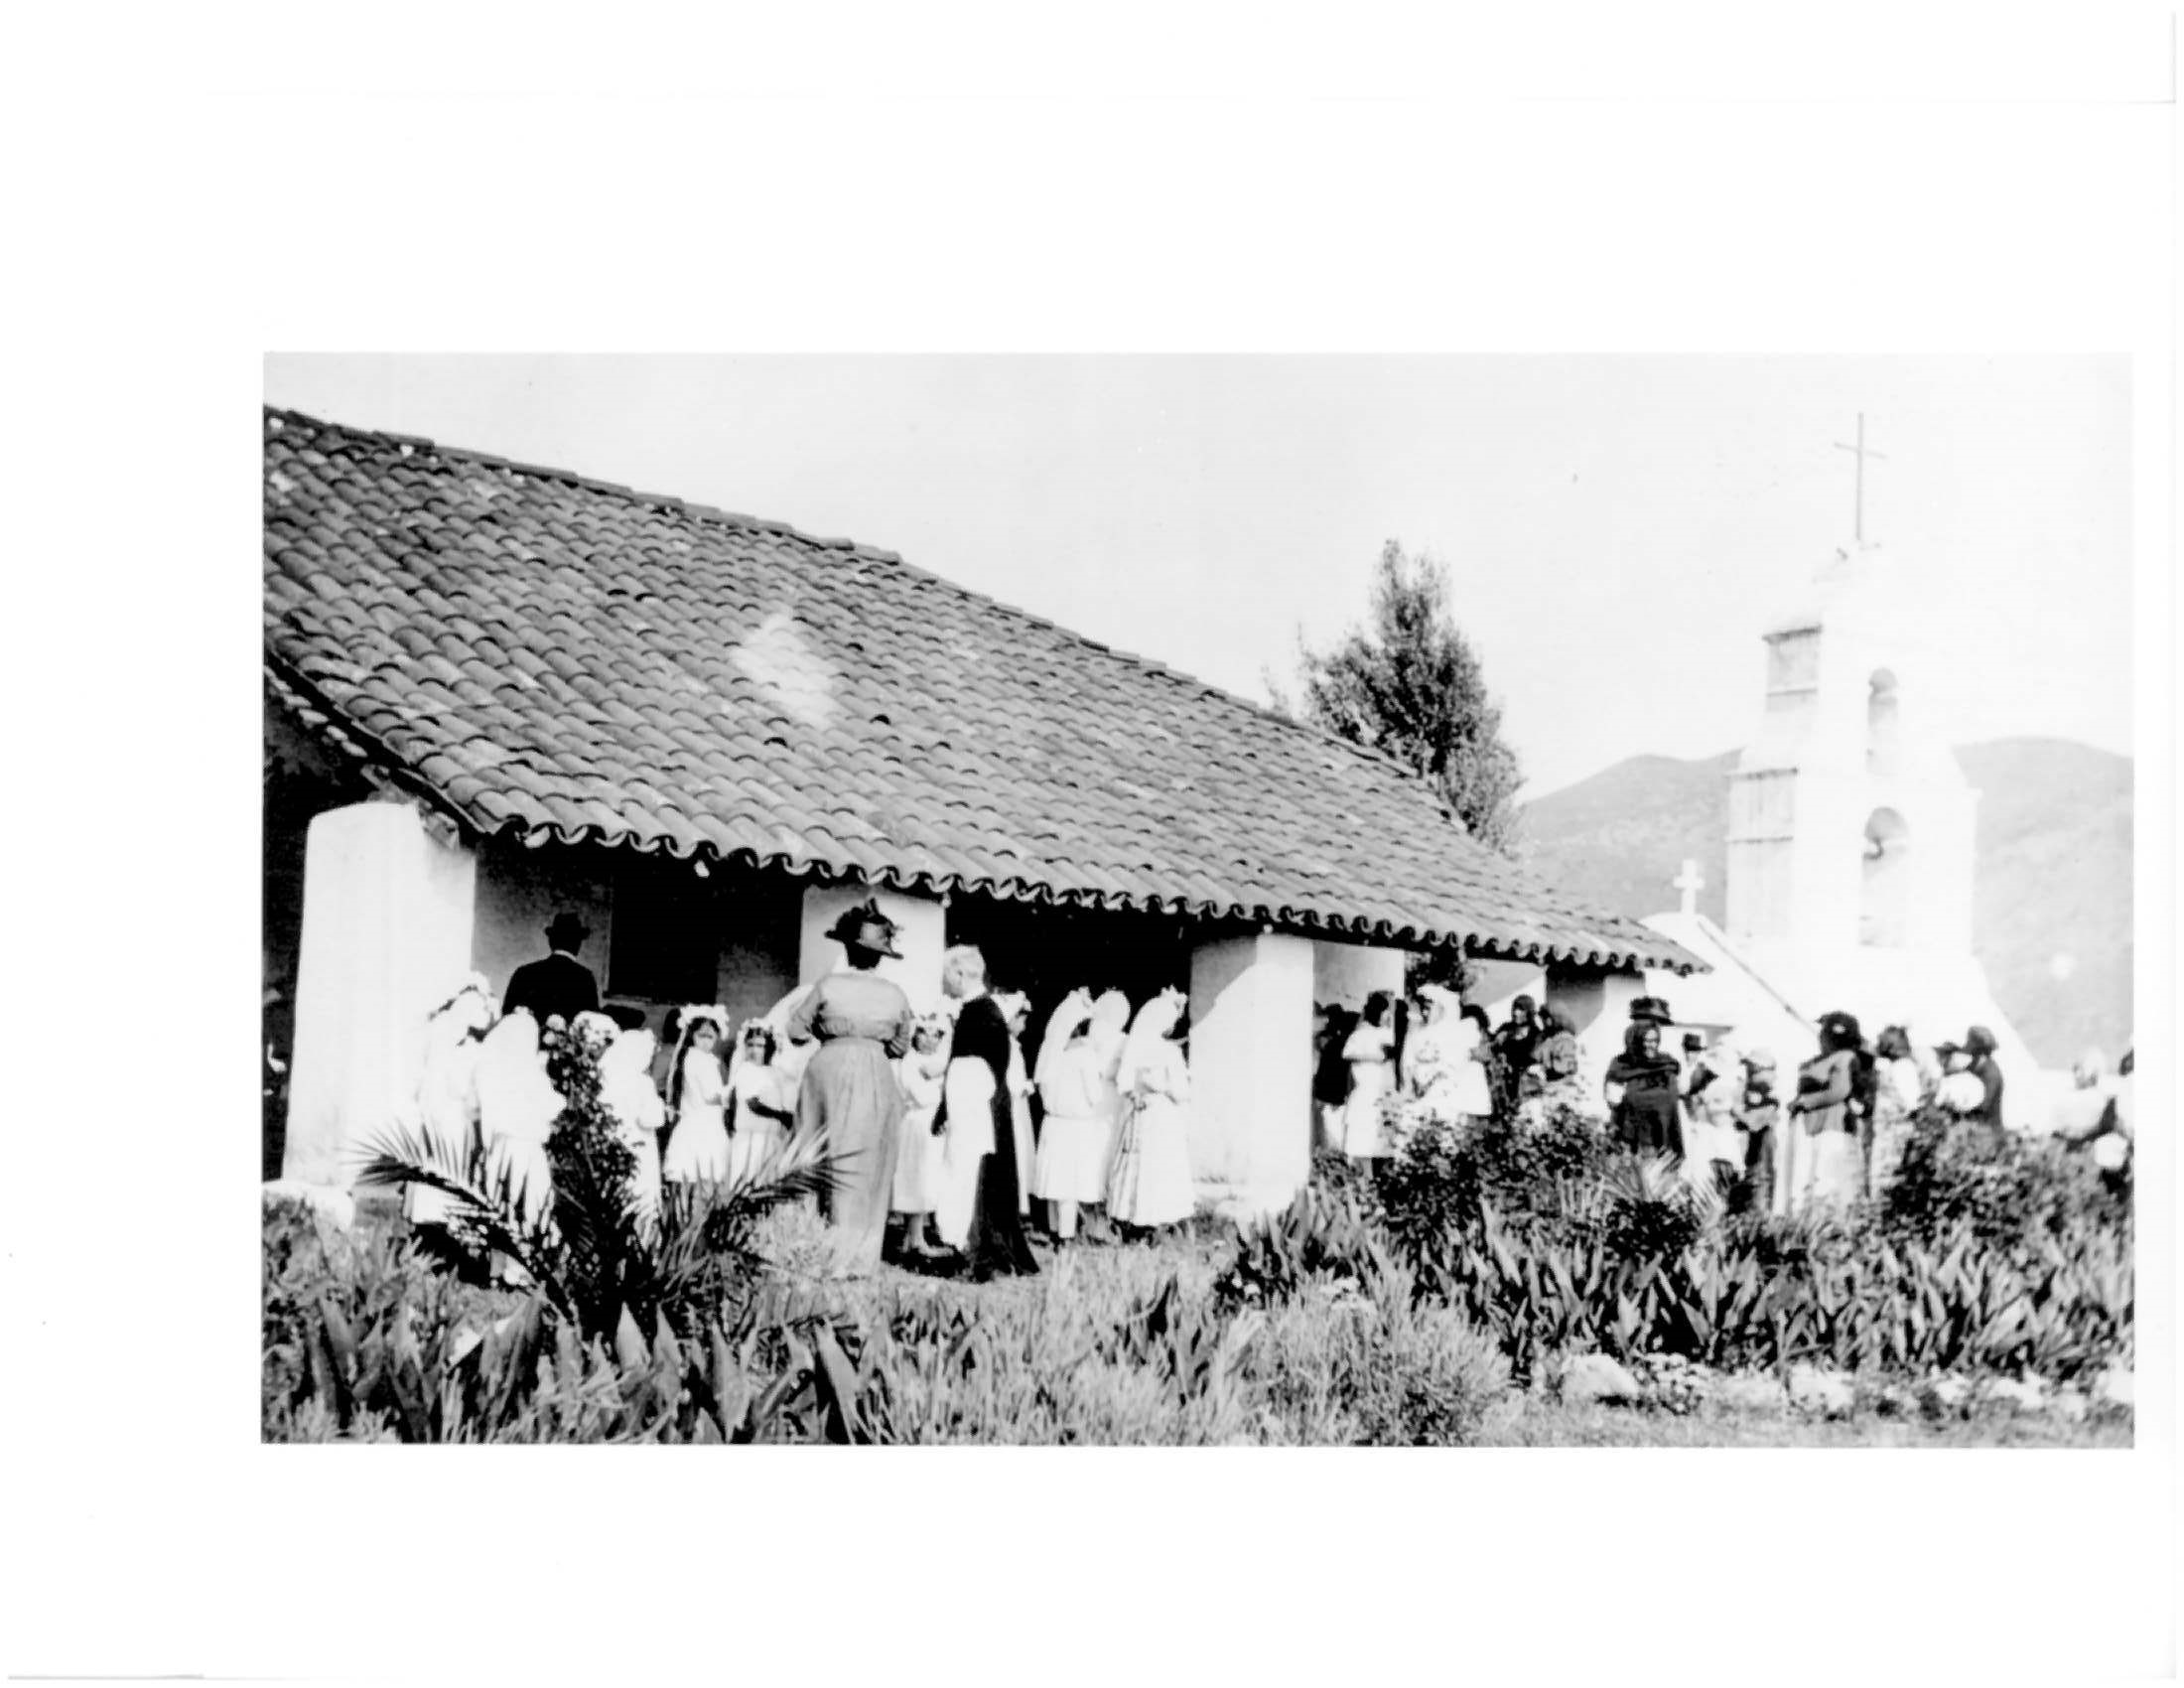 Old photograph of people in white dresses and other finery in front of tile-roofed adobe surrounded by agave plants with belfry in background